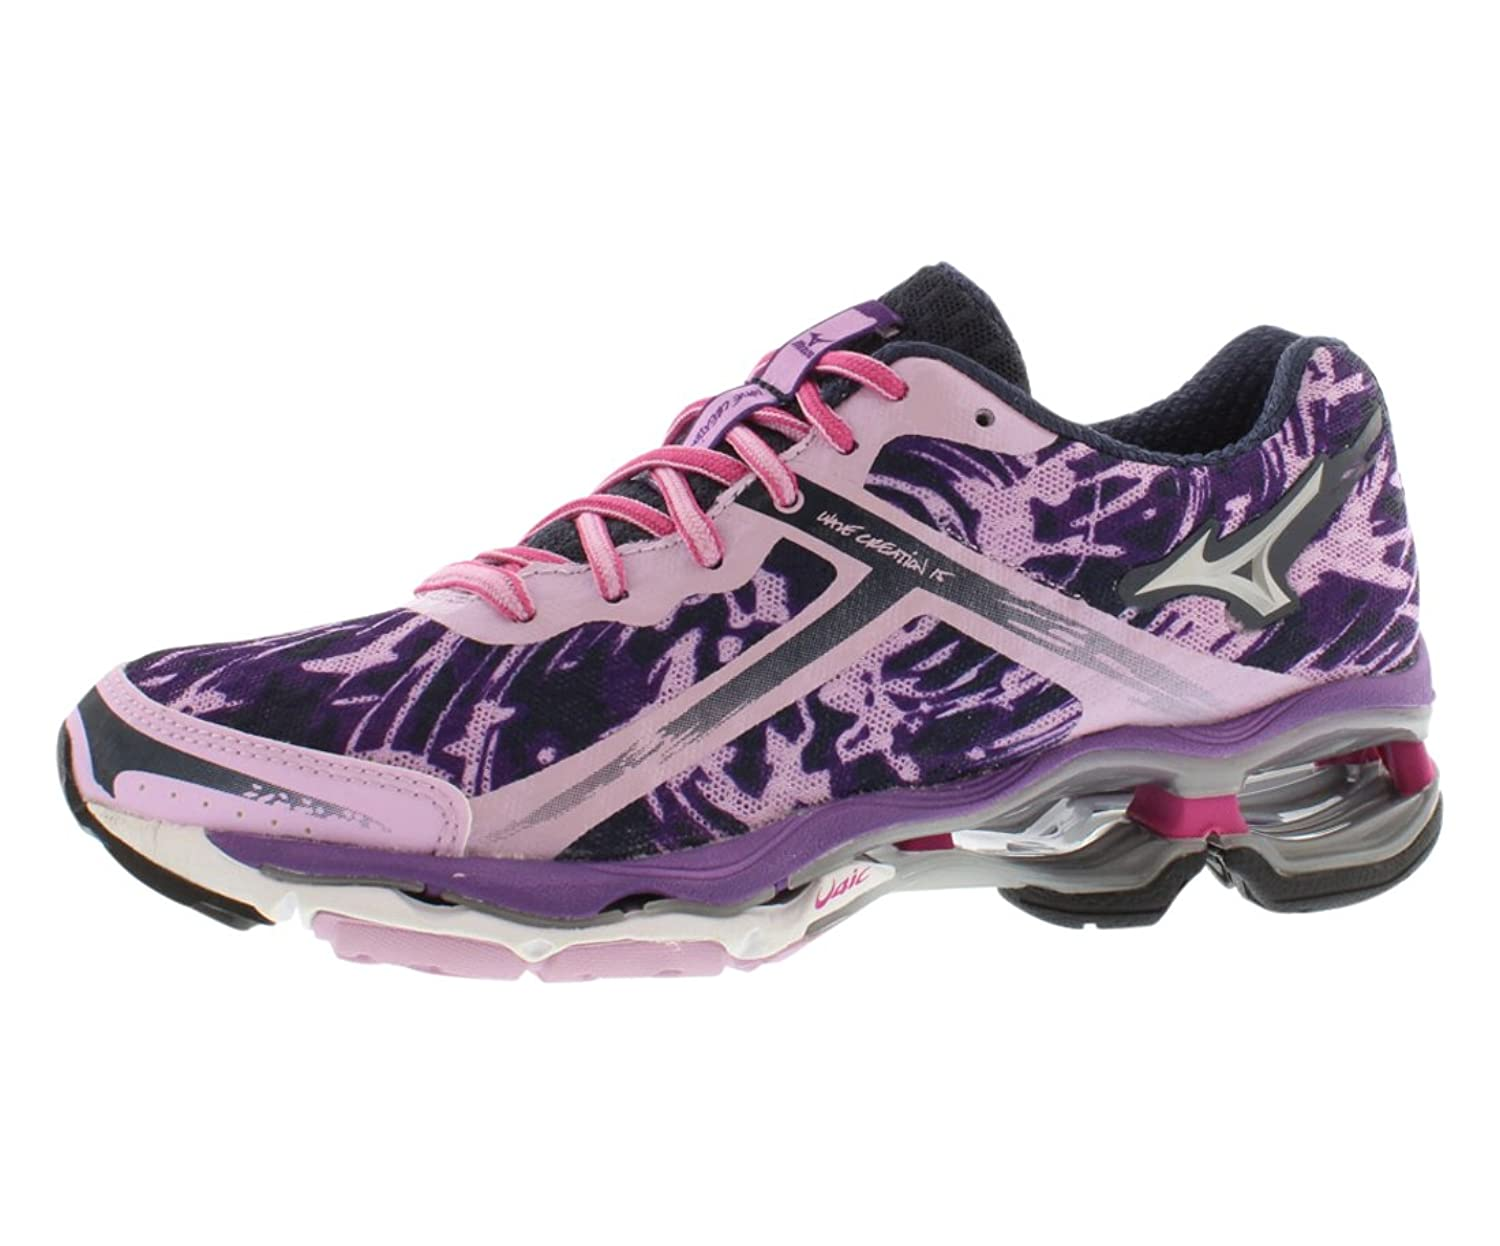 Mizuno Creación Onda 15w Amazon MR0VhA018